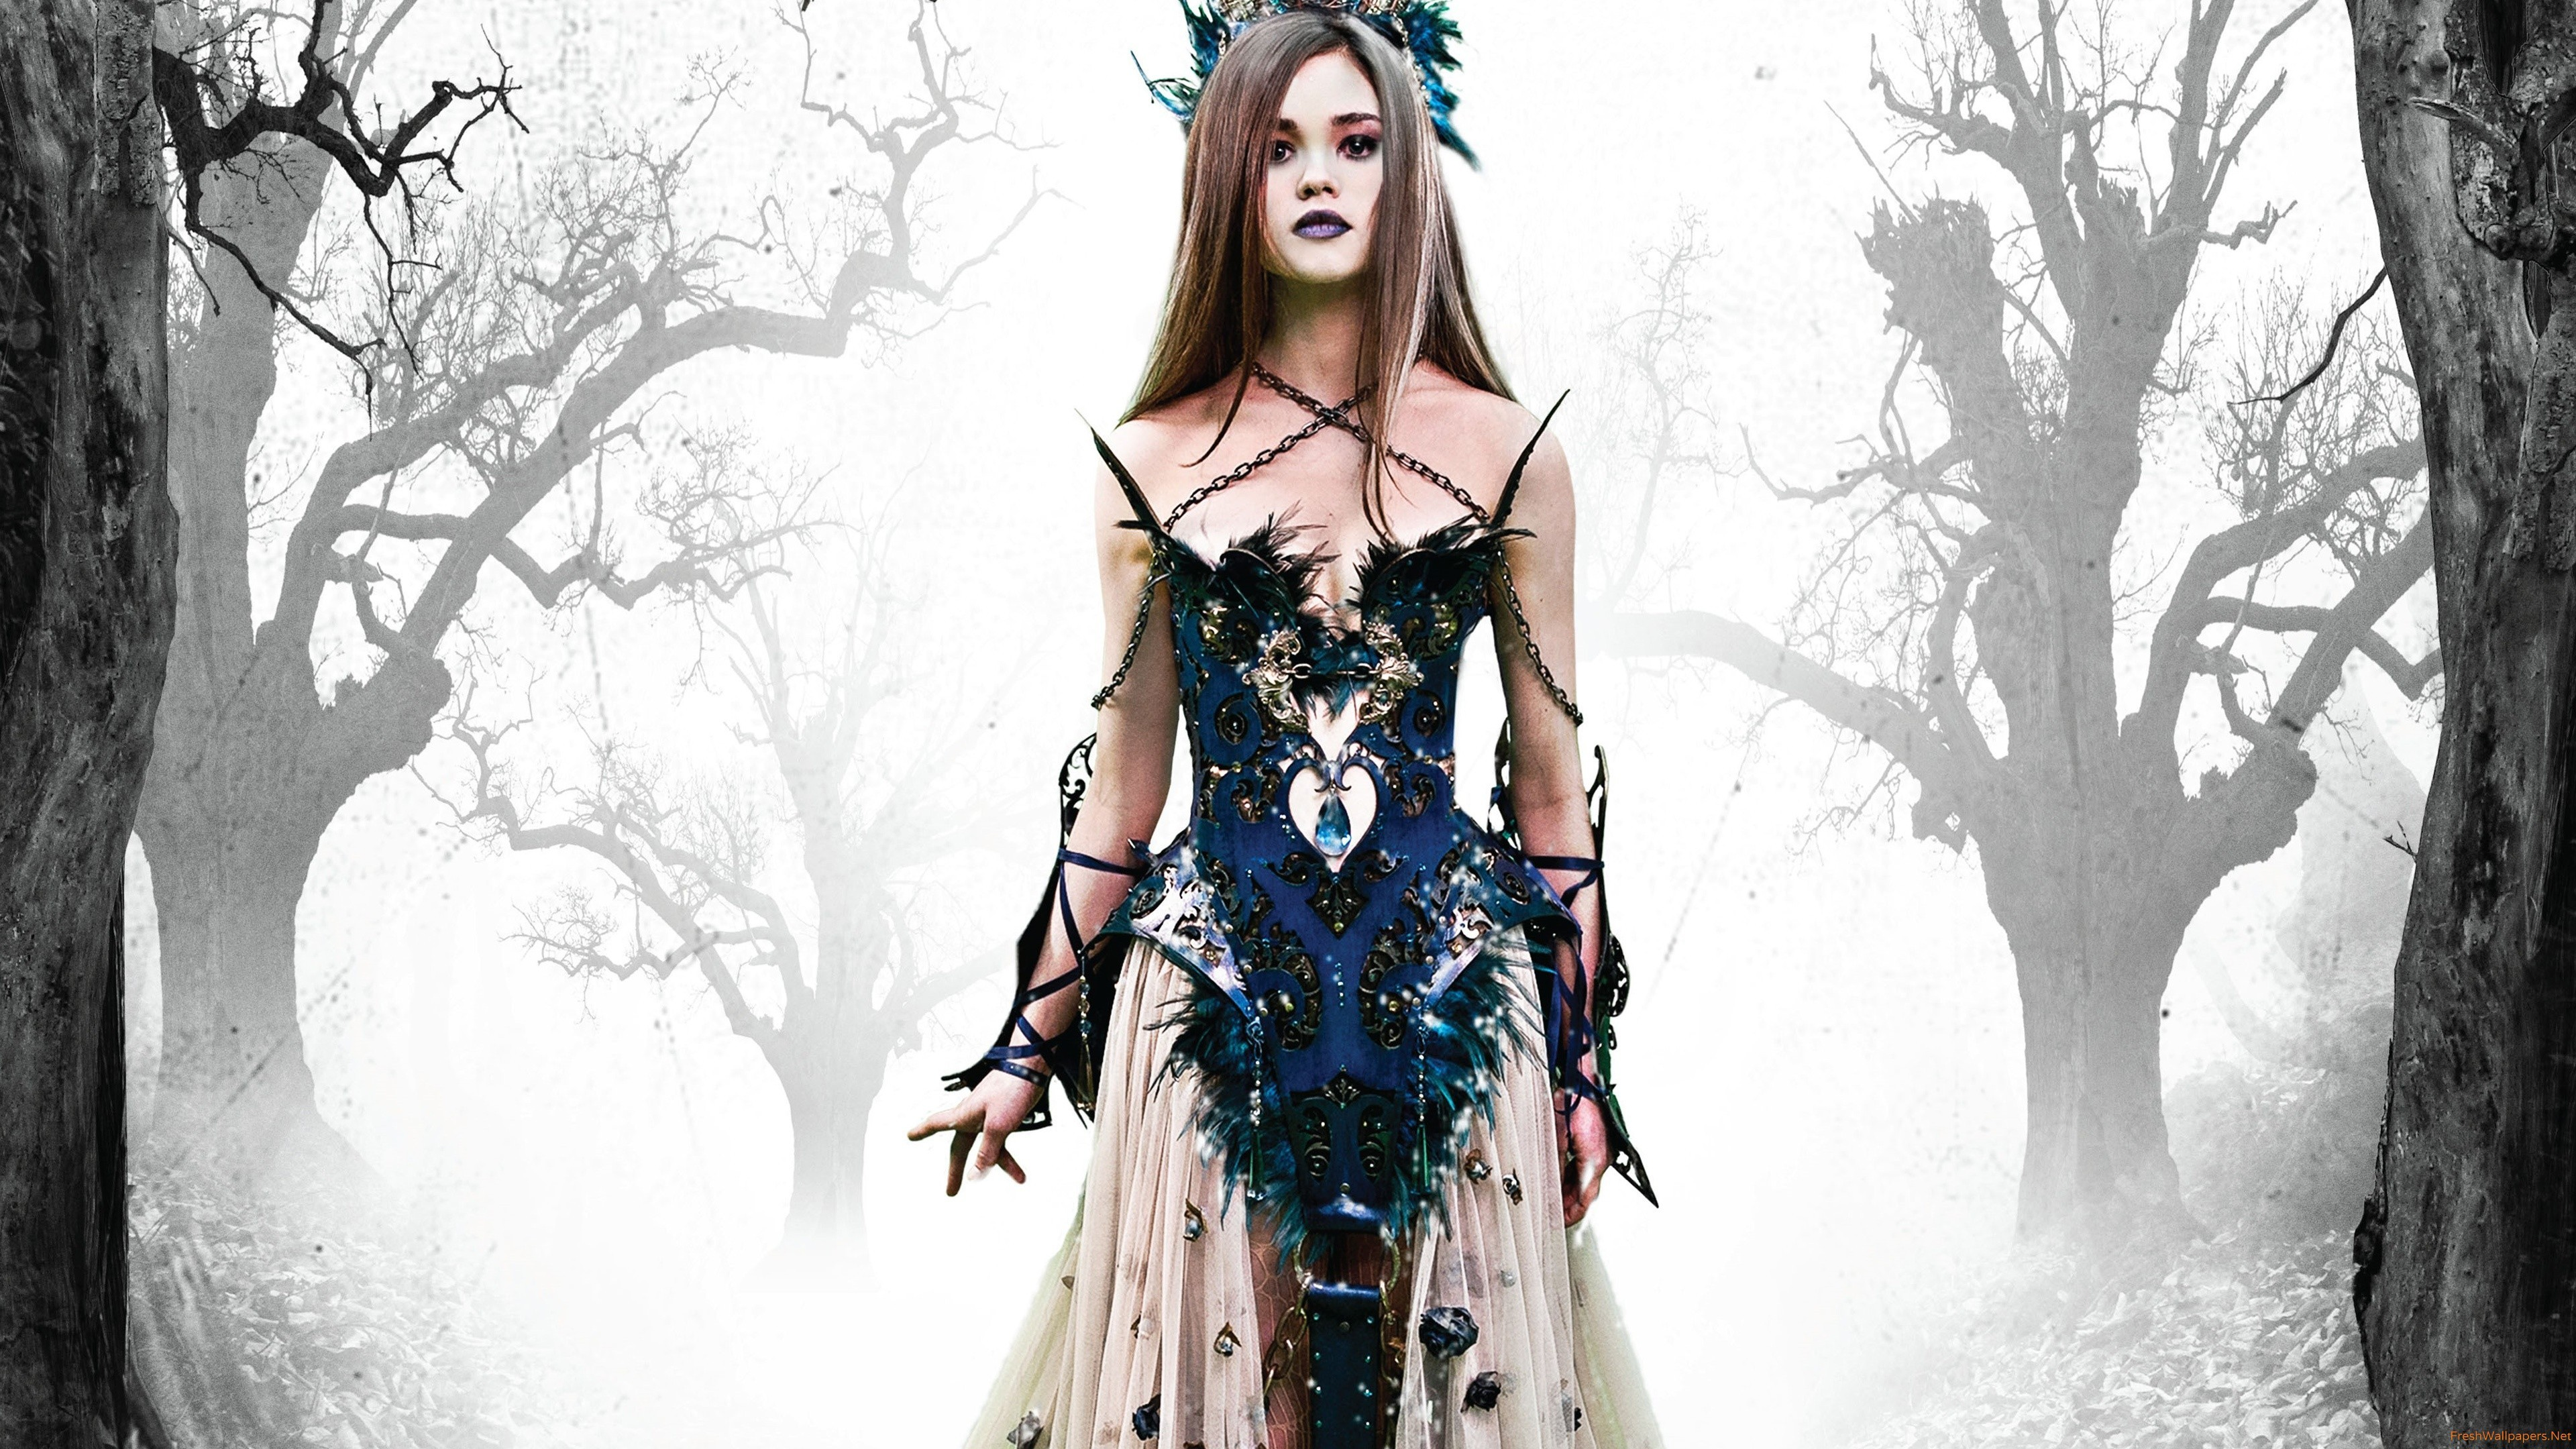 wallpaper the curse of sleeping beauty india eisley best